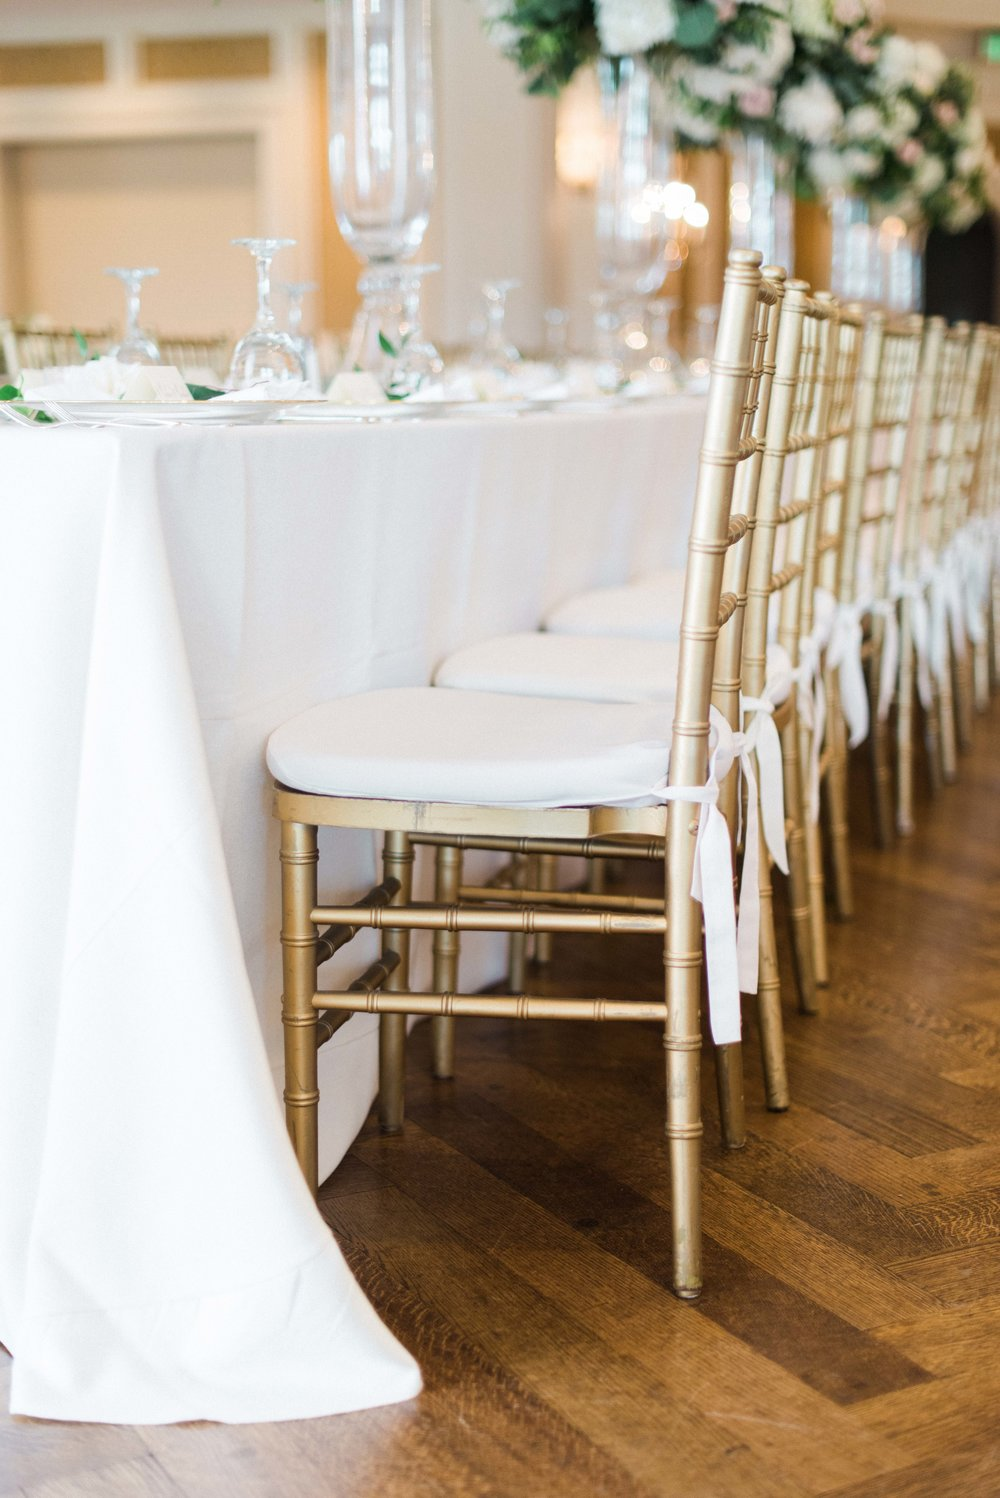 Fine-Art-Film-Houston-Wedding-Photographer-Best-Top-Luxury-Texas-Austin-Dallas-Destination-Dana-Fernandez-Photography-River-Oaks-Country-Club-South-Main-Baptist-Ceremony-Reception-Wedding-17.jpg